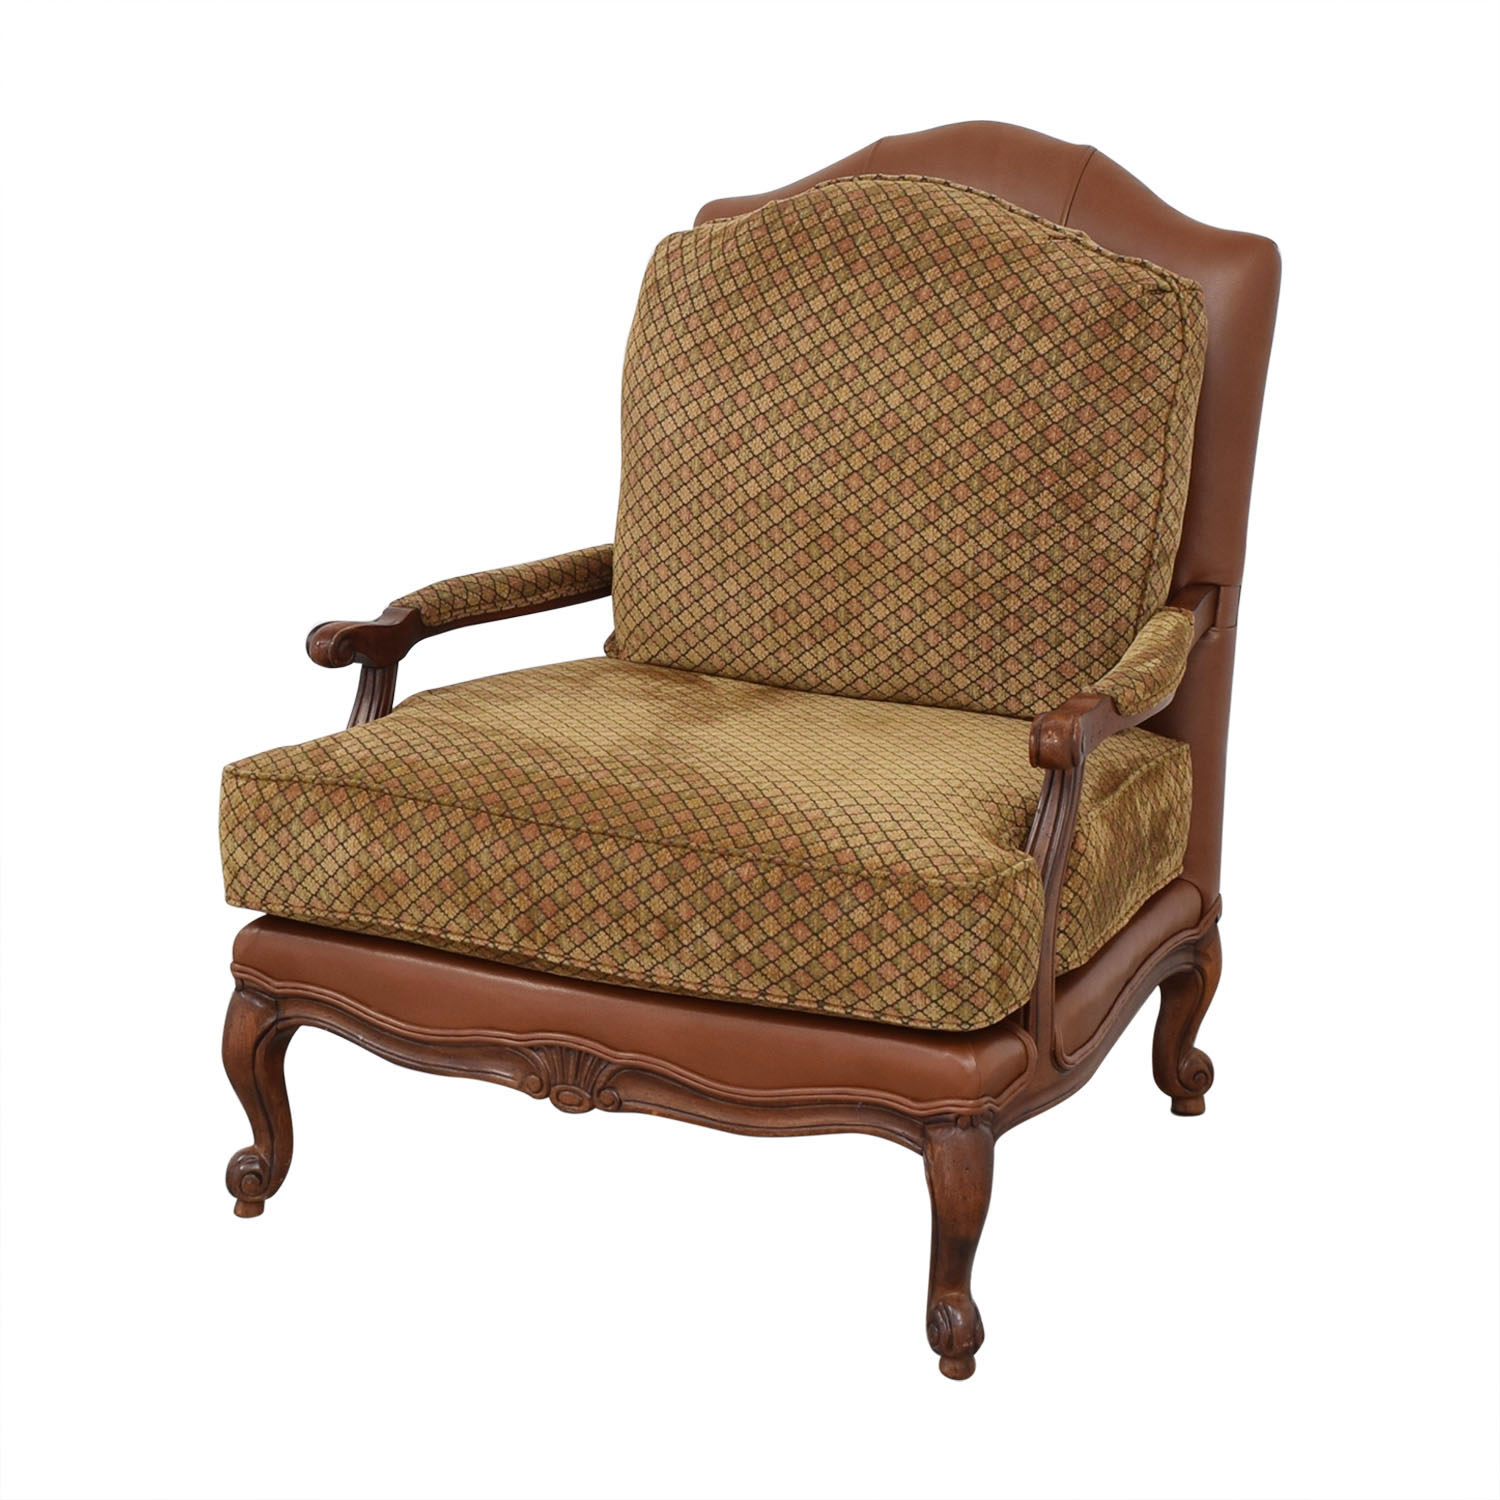 buy Ethan Allen Ethan Allen Upholstered Accent Chair online